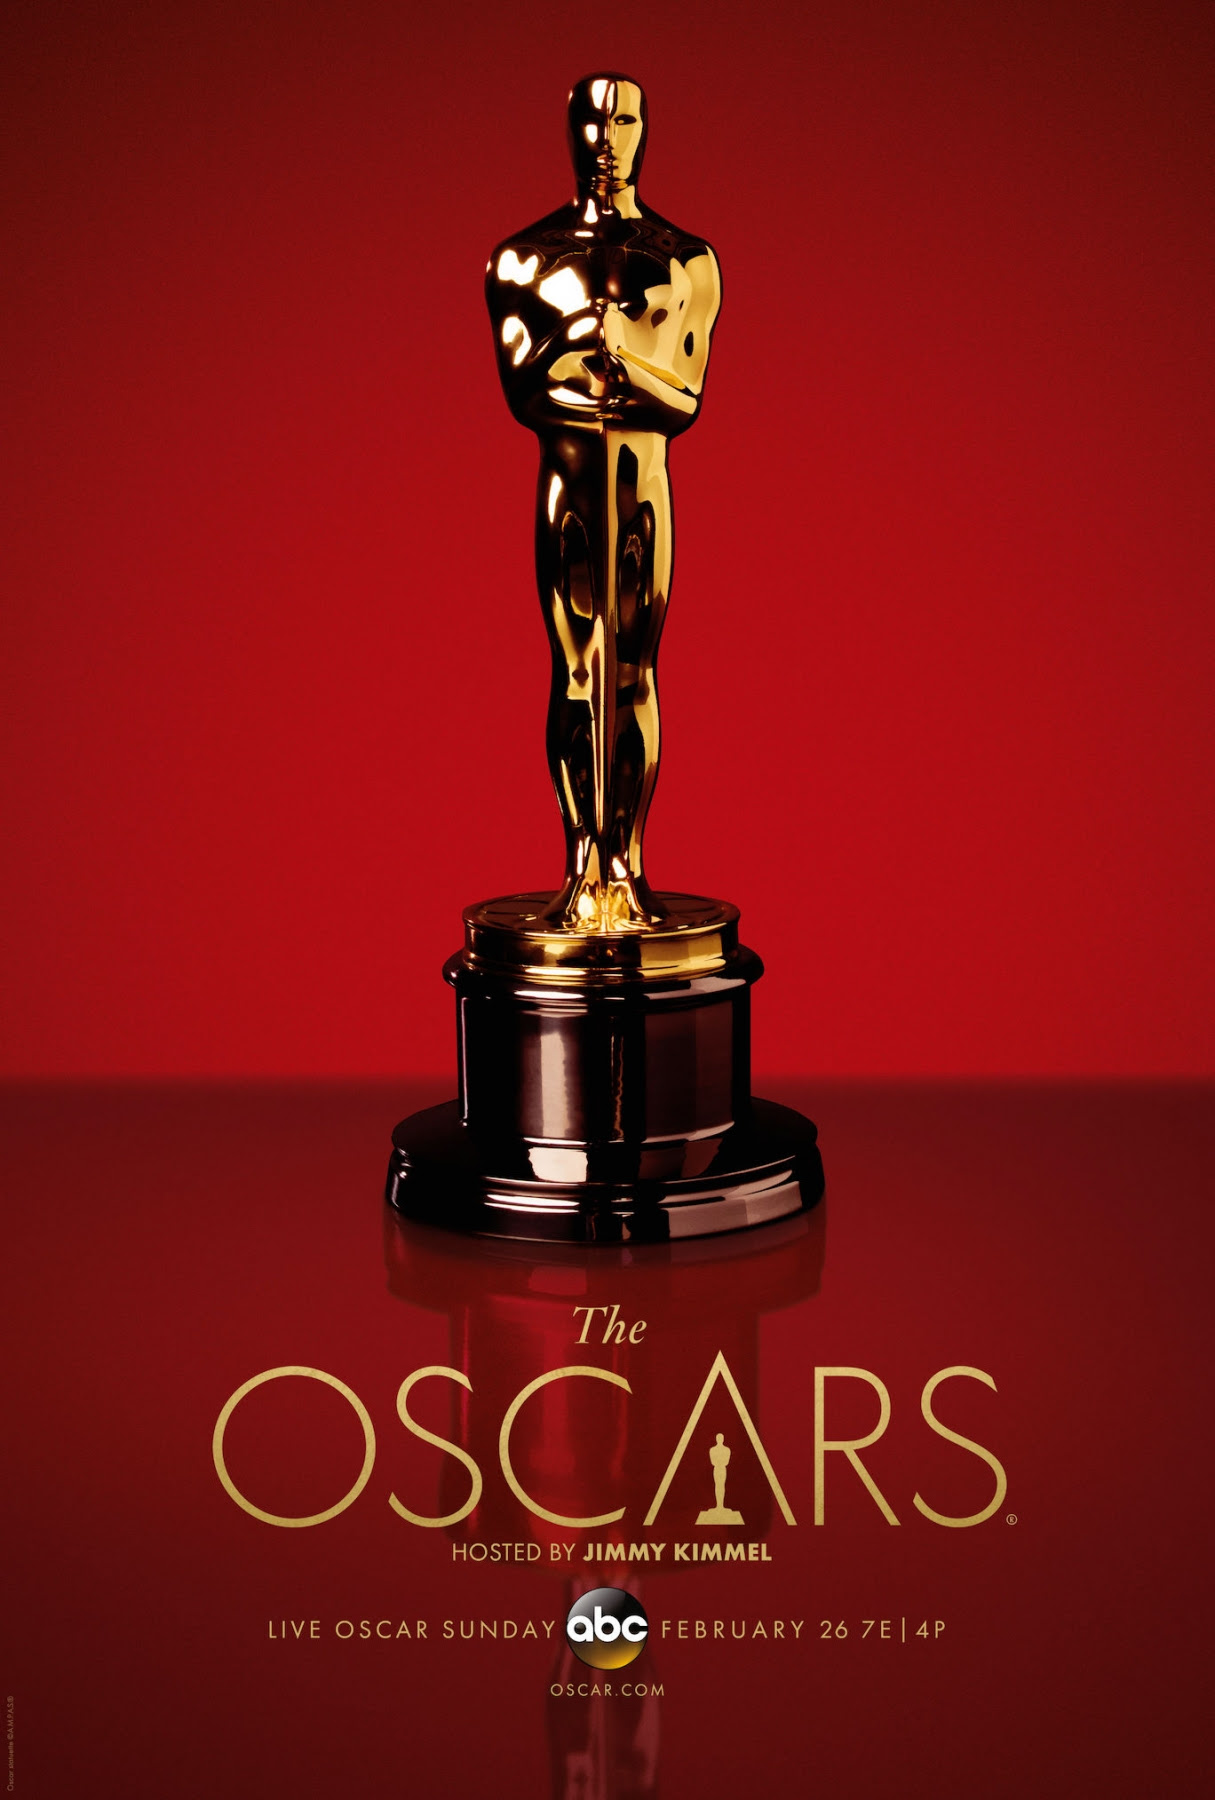 89th Oscars nominations announced